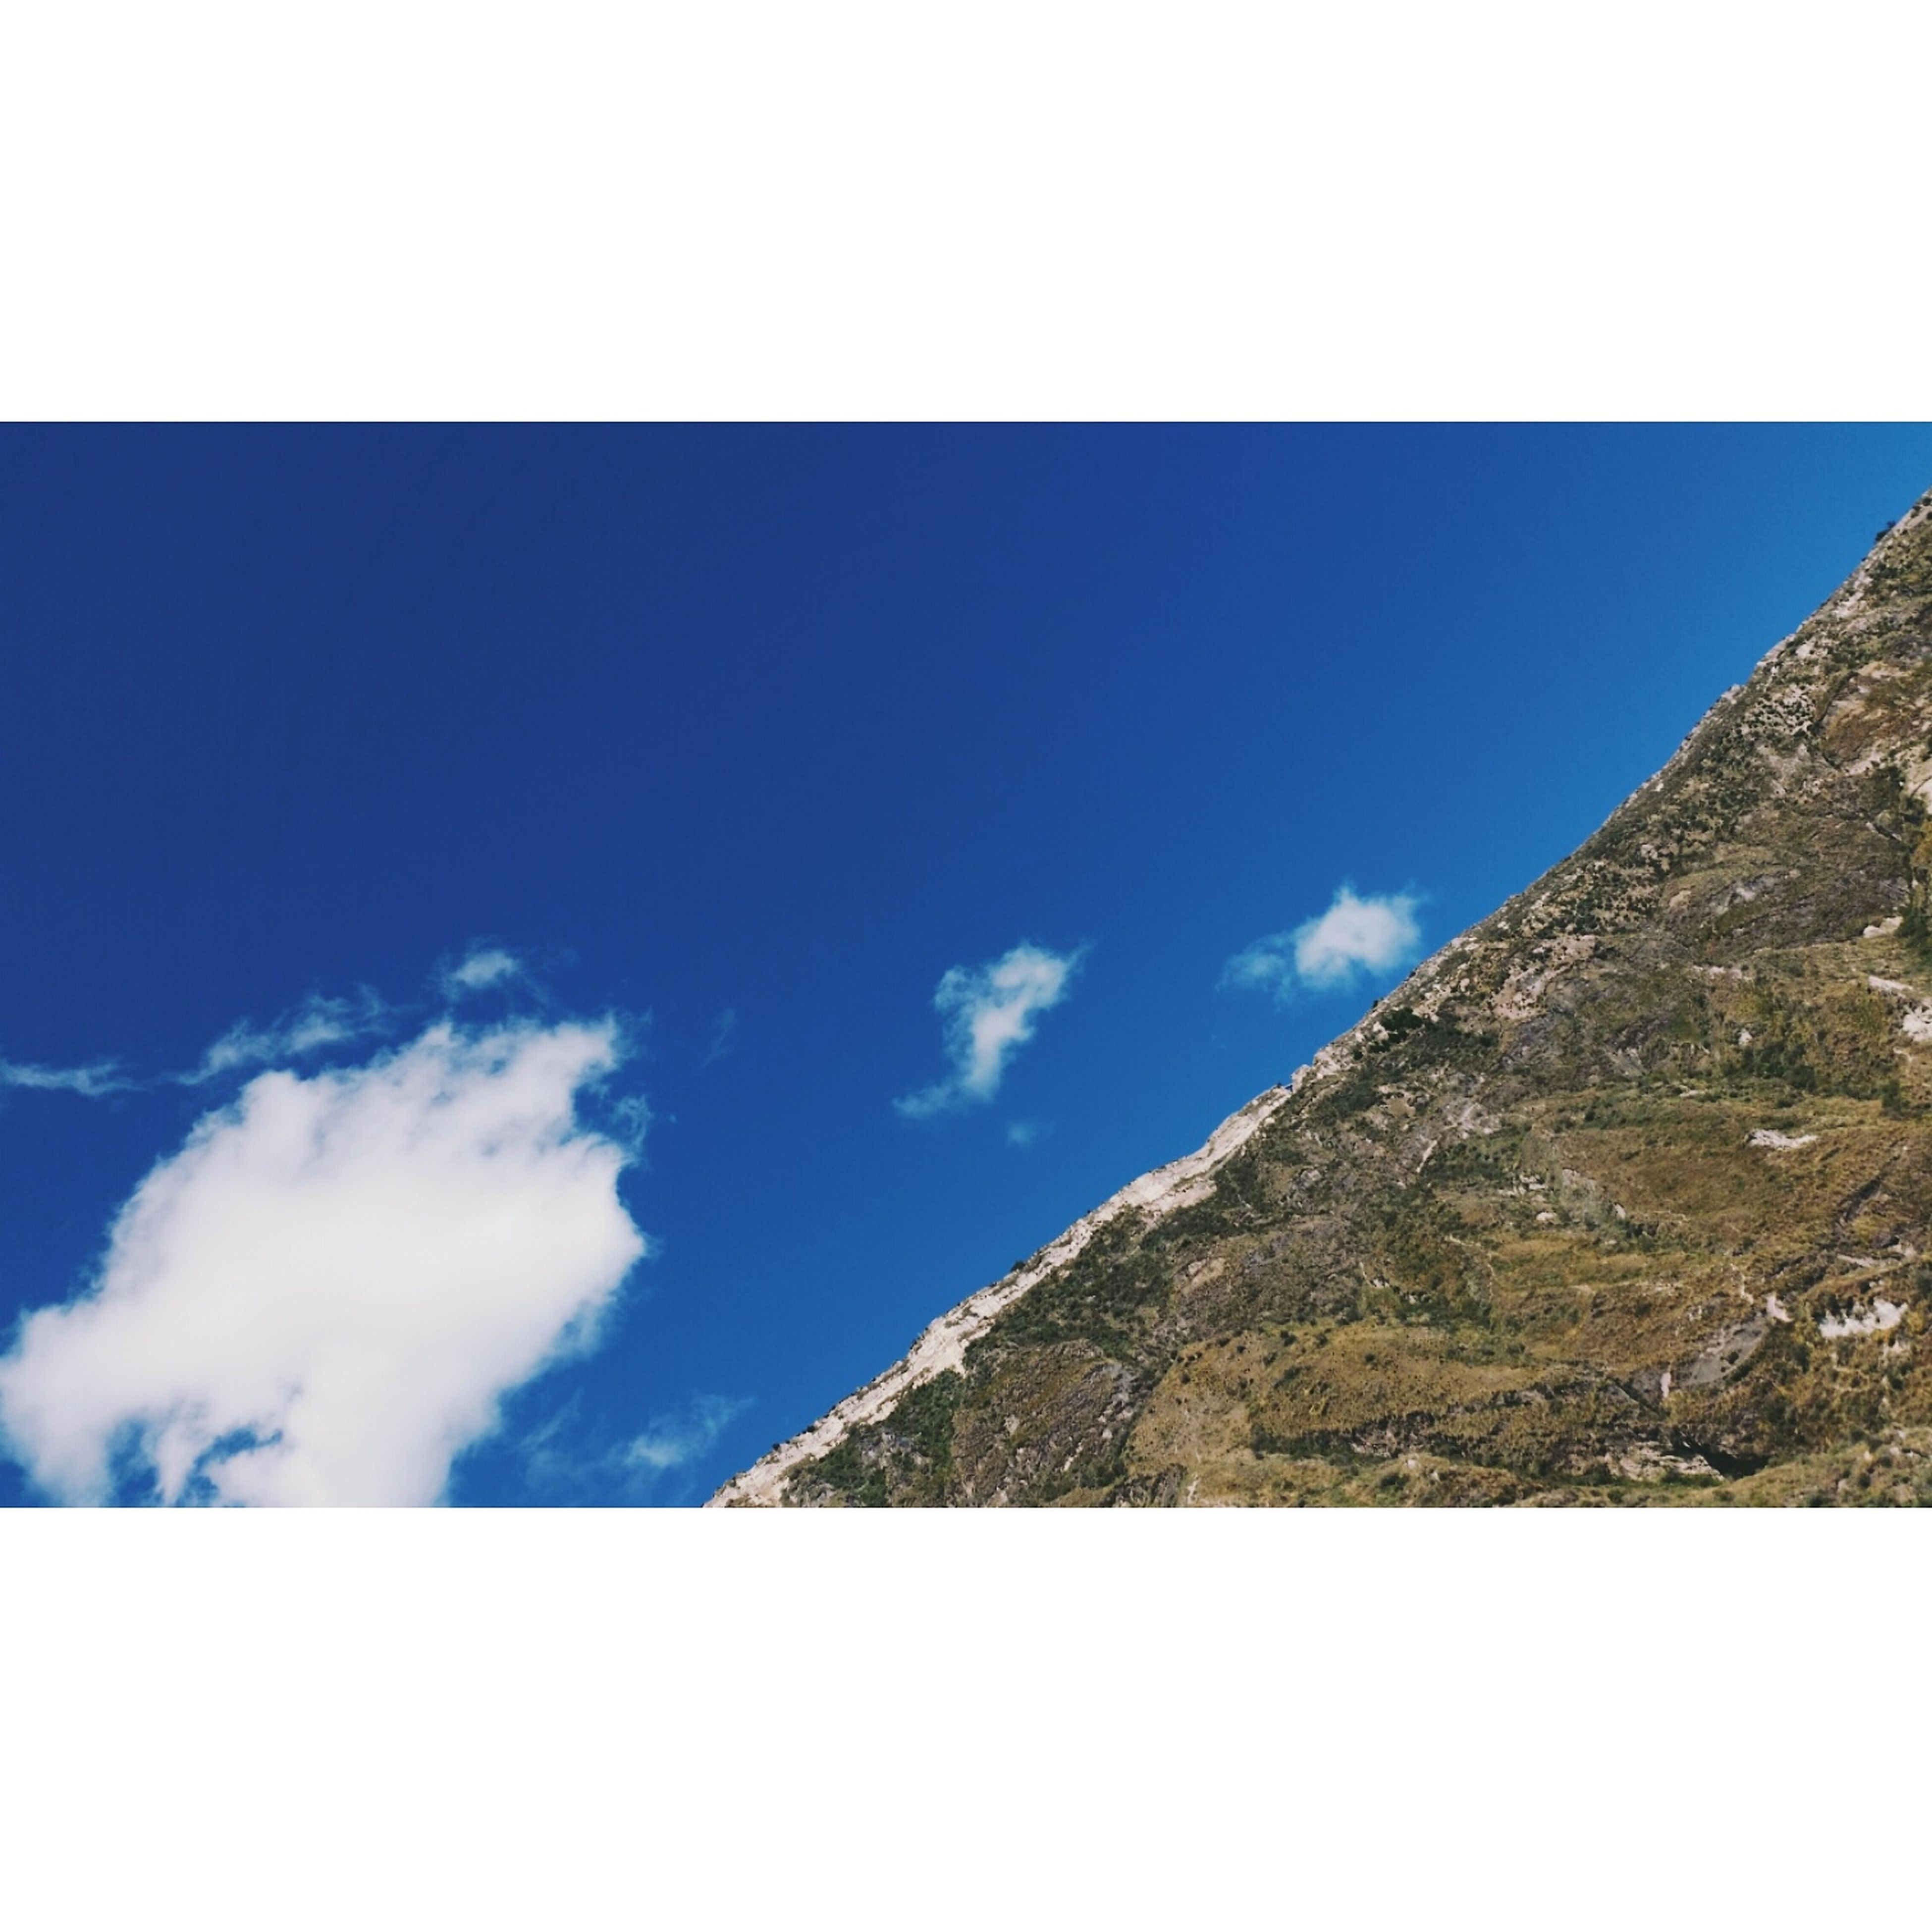 blue, sky, auto post production filter, low angle view, tranquil scene, transfer print, scenics, tranquility, mountain, beauty in nature, cloud, nature, day, outdoors, mountain range, cloud - sky, no people, non-urban scene, majestic, remote, solitude, rocky